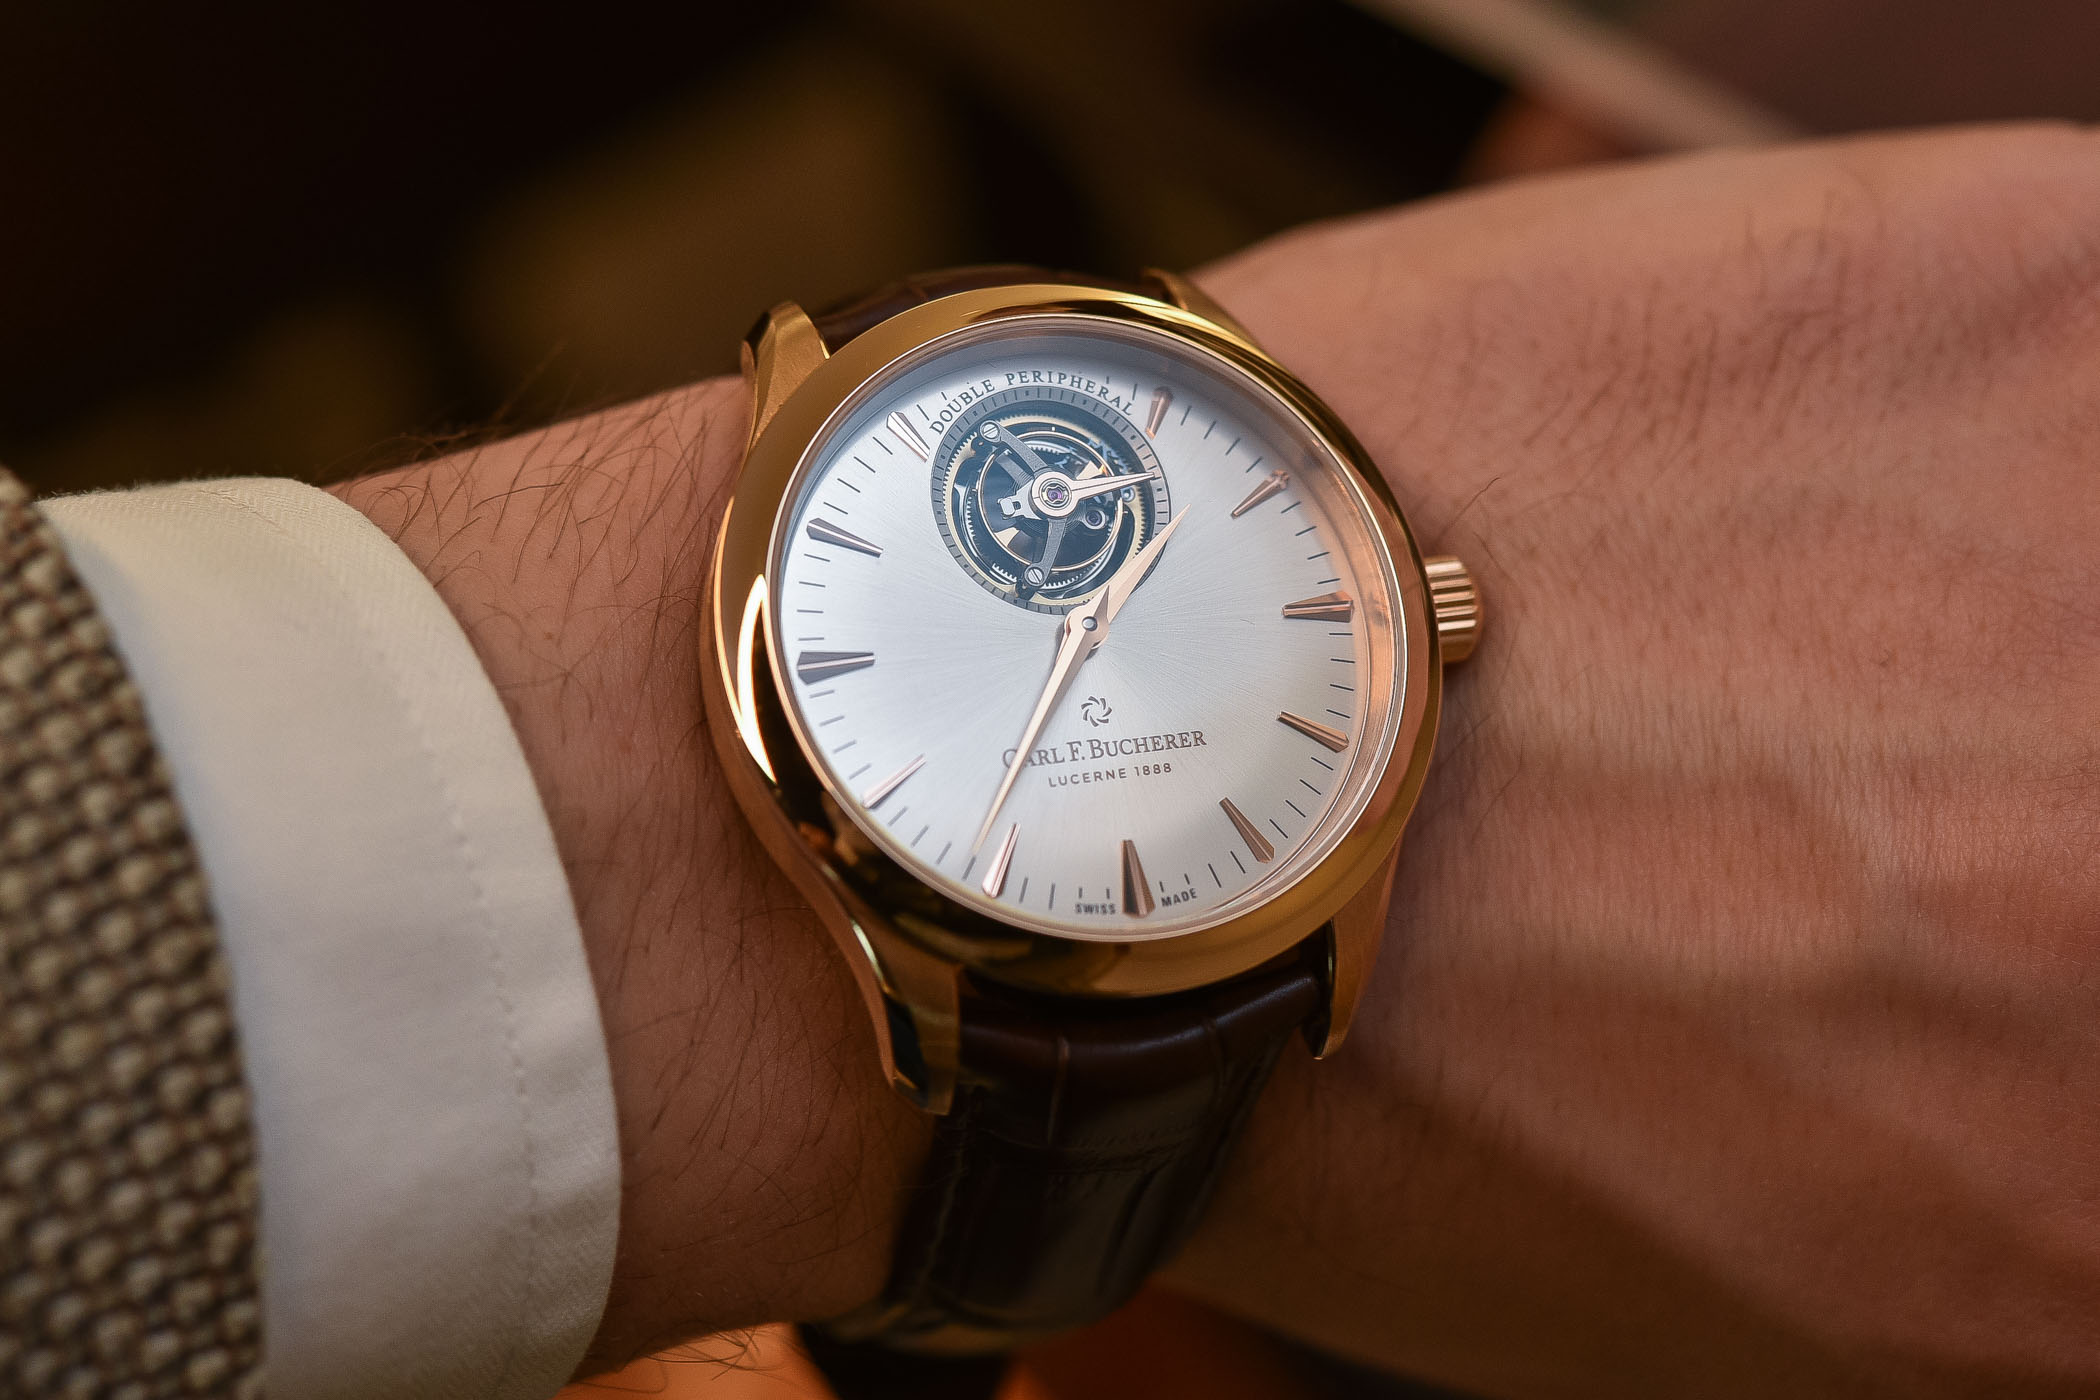 Carl F. Bucherer Manero Tourbillon Double Peripheral - baselworld 2018 - review